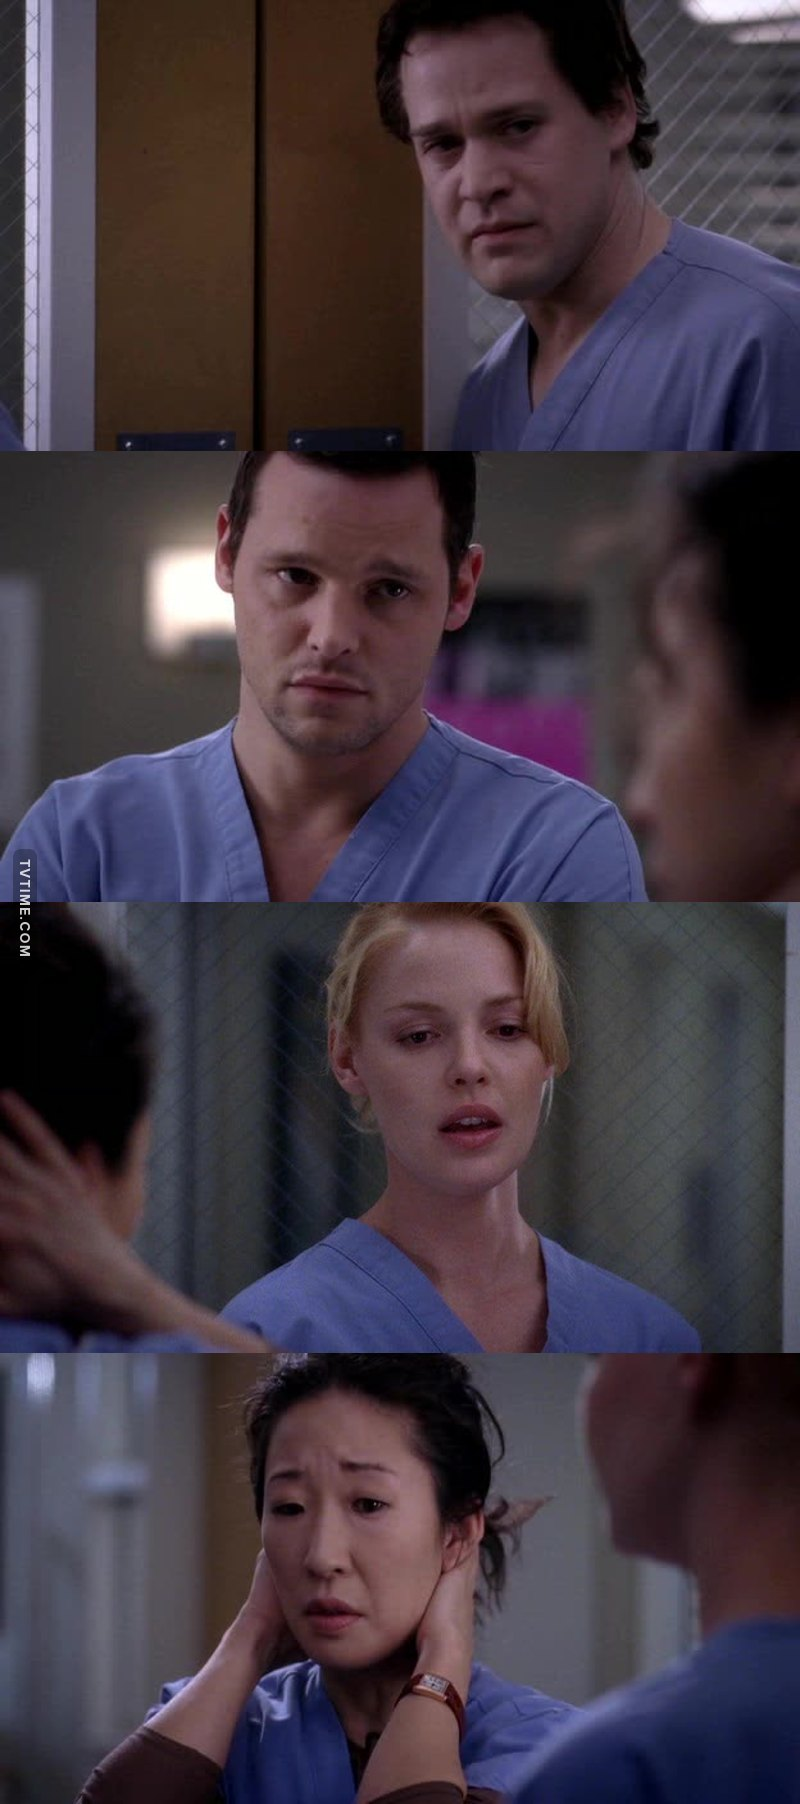 Their faces 😭😭😭💔 That episode killed me 😭💔💔